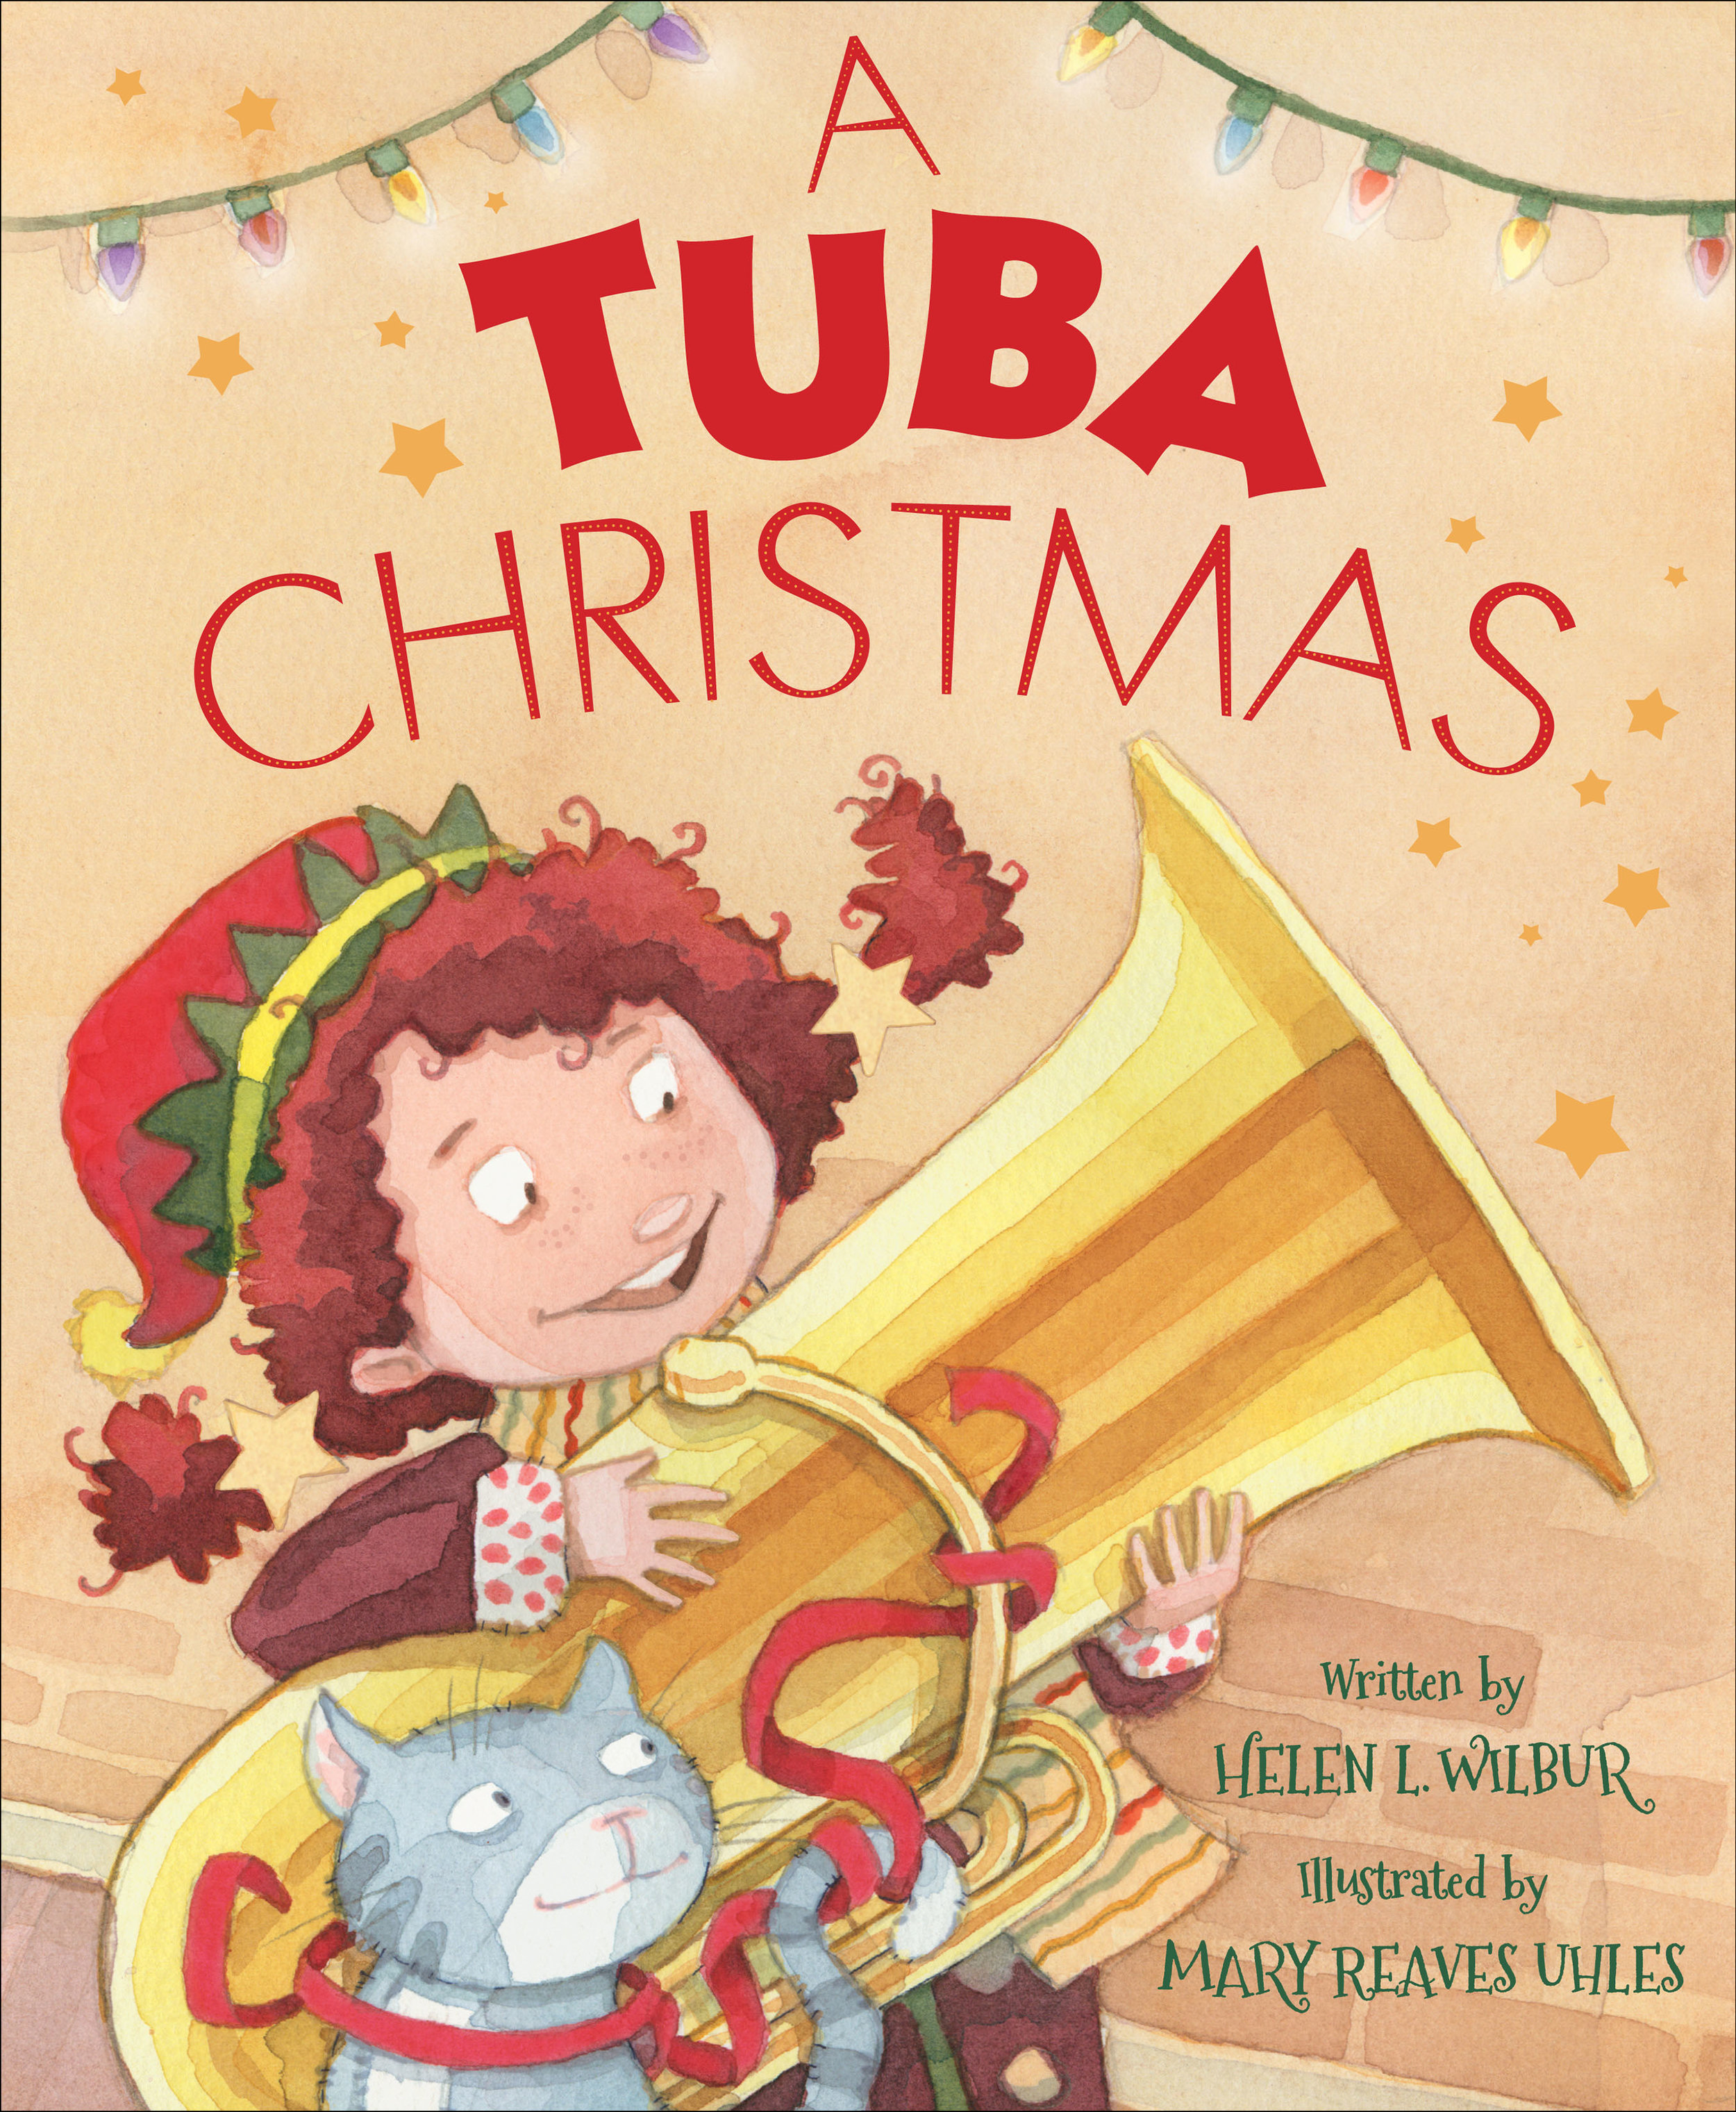 A Tuba Christmas   Written by Helen Wilbur illustrated by Mary Reaves Uhles  Available now from Sleeping Bear Press, Picture book 32 pages  With a family that loves music as much as hers does, it was only a matter of time before it was Ava's turn to pick out an instrument. Her mother plays the piano, her father plays the violin, and one brother plays the cello while the other plays the clarinet. As soon as Ava selects an instrument, she will be able to join them as they practice for the annual holiday concert. And her family has definite ideas on what instrument Ava should select, from the piano to the flute to the violin. But Ava isn't interested in any of them. Ava wants to play the tuba. And she gets her wish. But playing the tuba isn't as easy as it seems. And there is no place for a tuba in the annual concert. But with the encouragement of her music teacher, Ava finds a place for her and her tuba in a special holiday celebration.